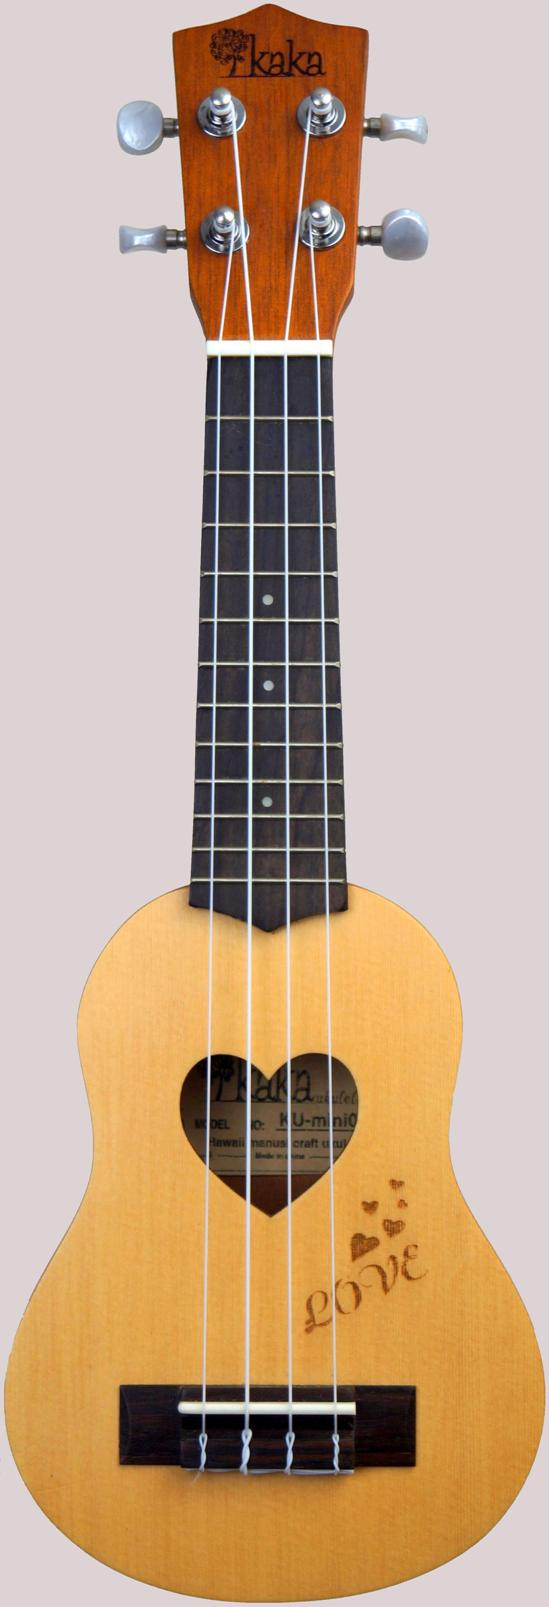 Enya Kaka Love mini sopranino pocket ukulele